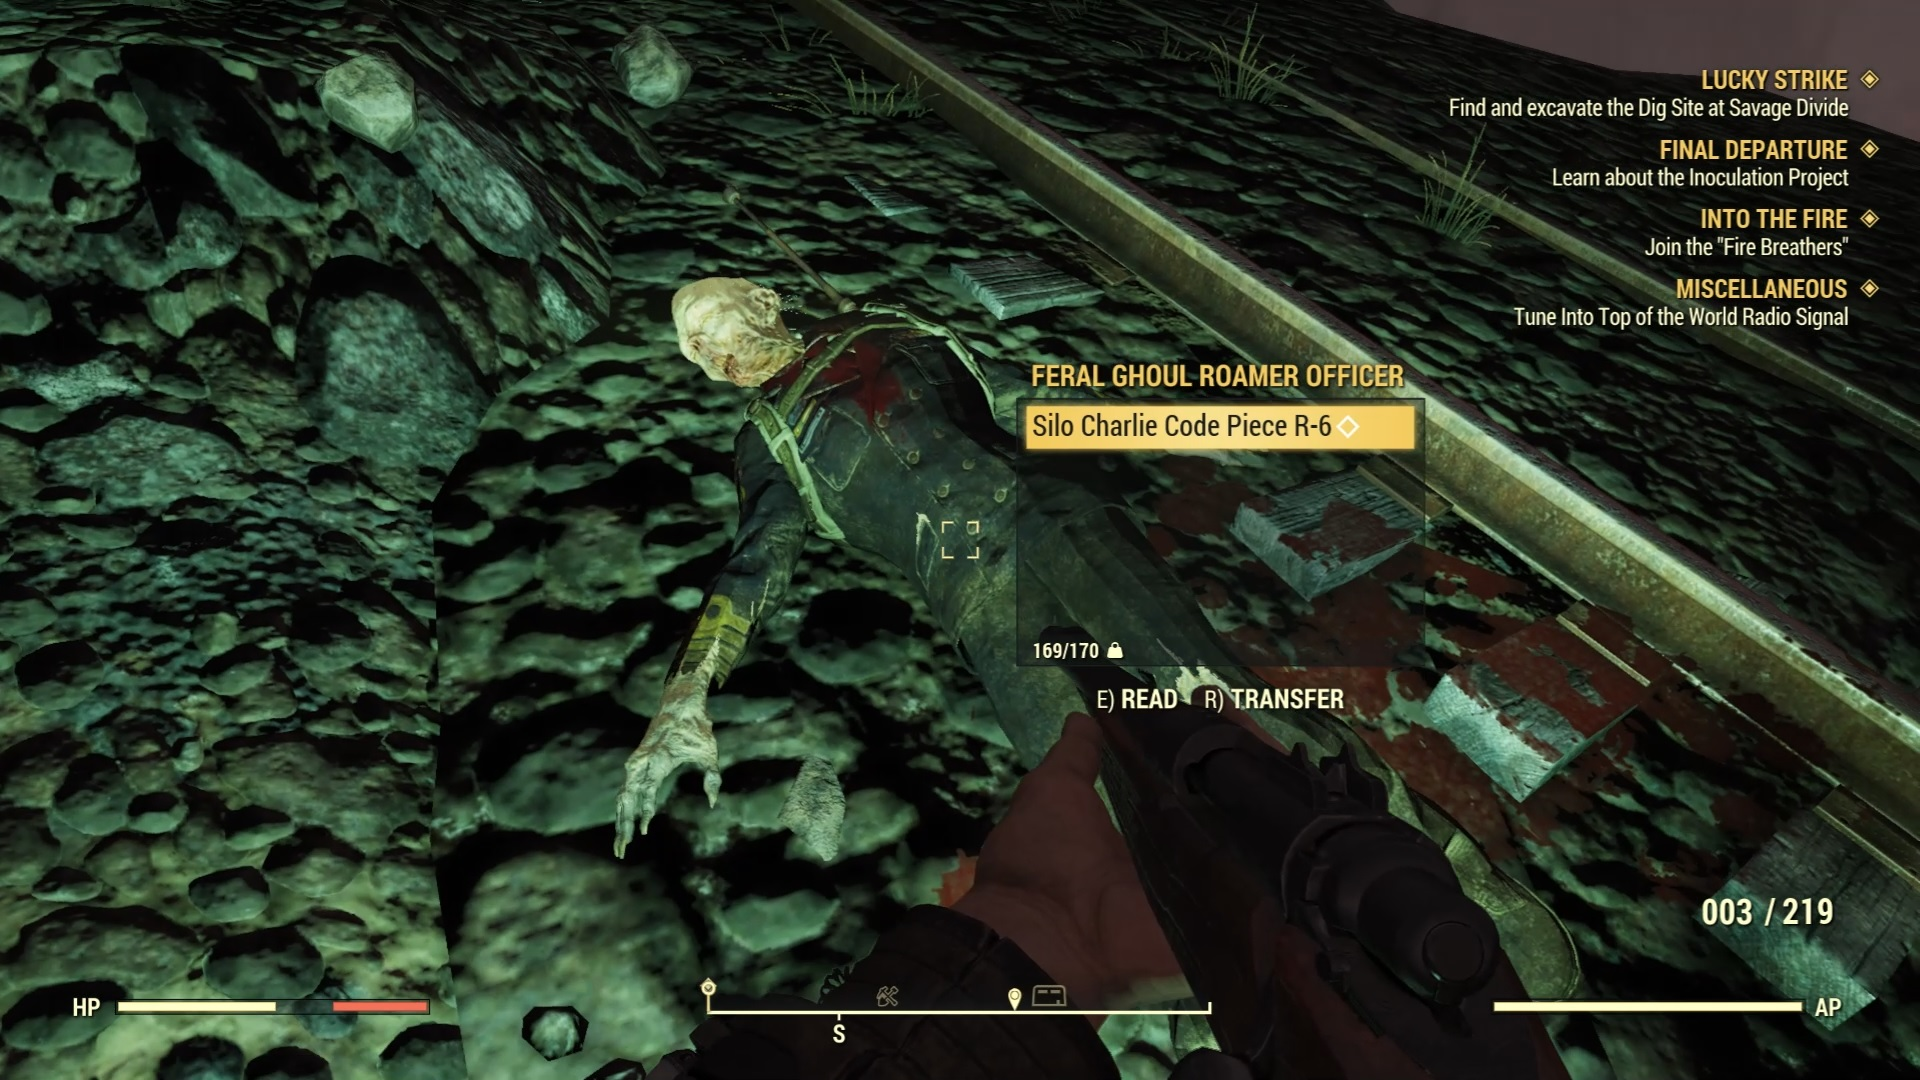 Player is looking down at a deceased Feral Ghoul officer with the nuclear code.